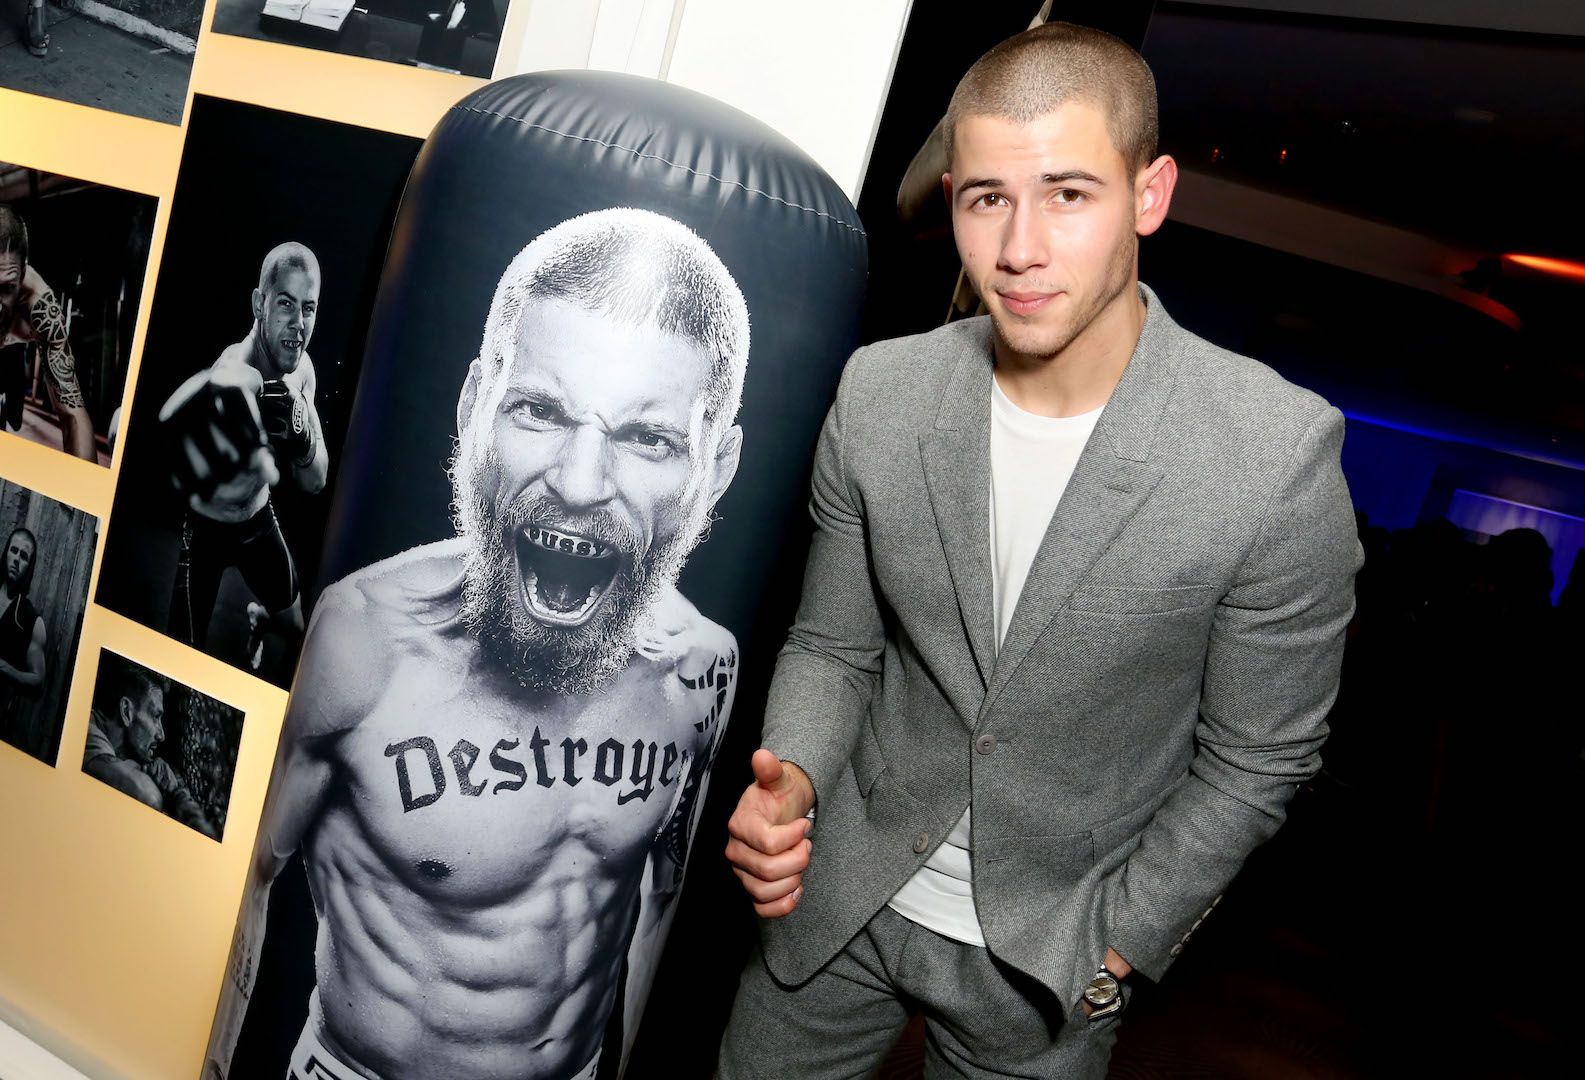 WEST HOLLYWOOD, CA - OCTOBER 06:  Singer/actor Nick Jonas celebrates the season 2 premiere of DIRECTV's KINGDOM on October 6, 2015 in West Hollywood, California.  (Photo by Rachel Murray/Getty Images for DIRECTV)